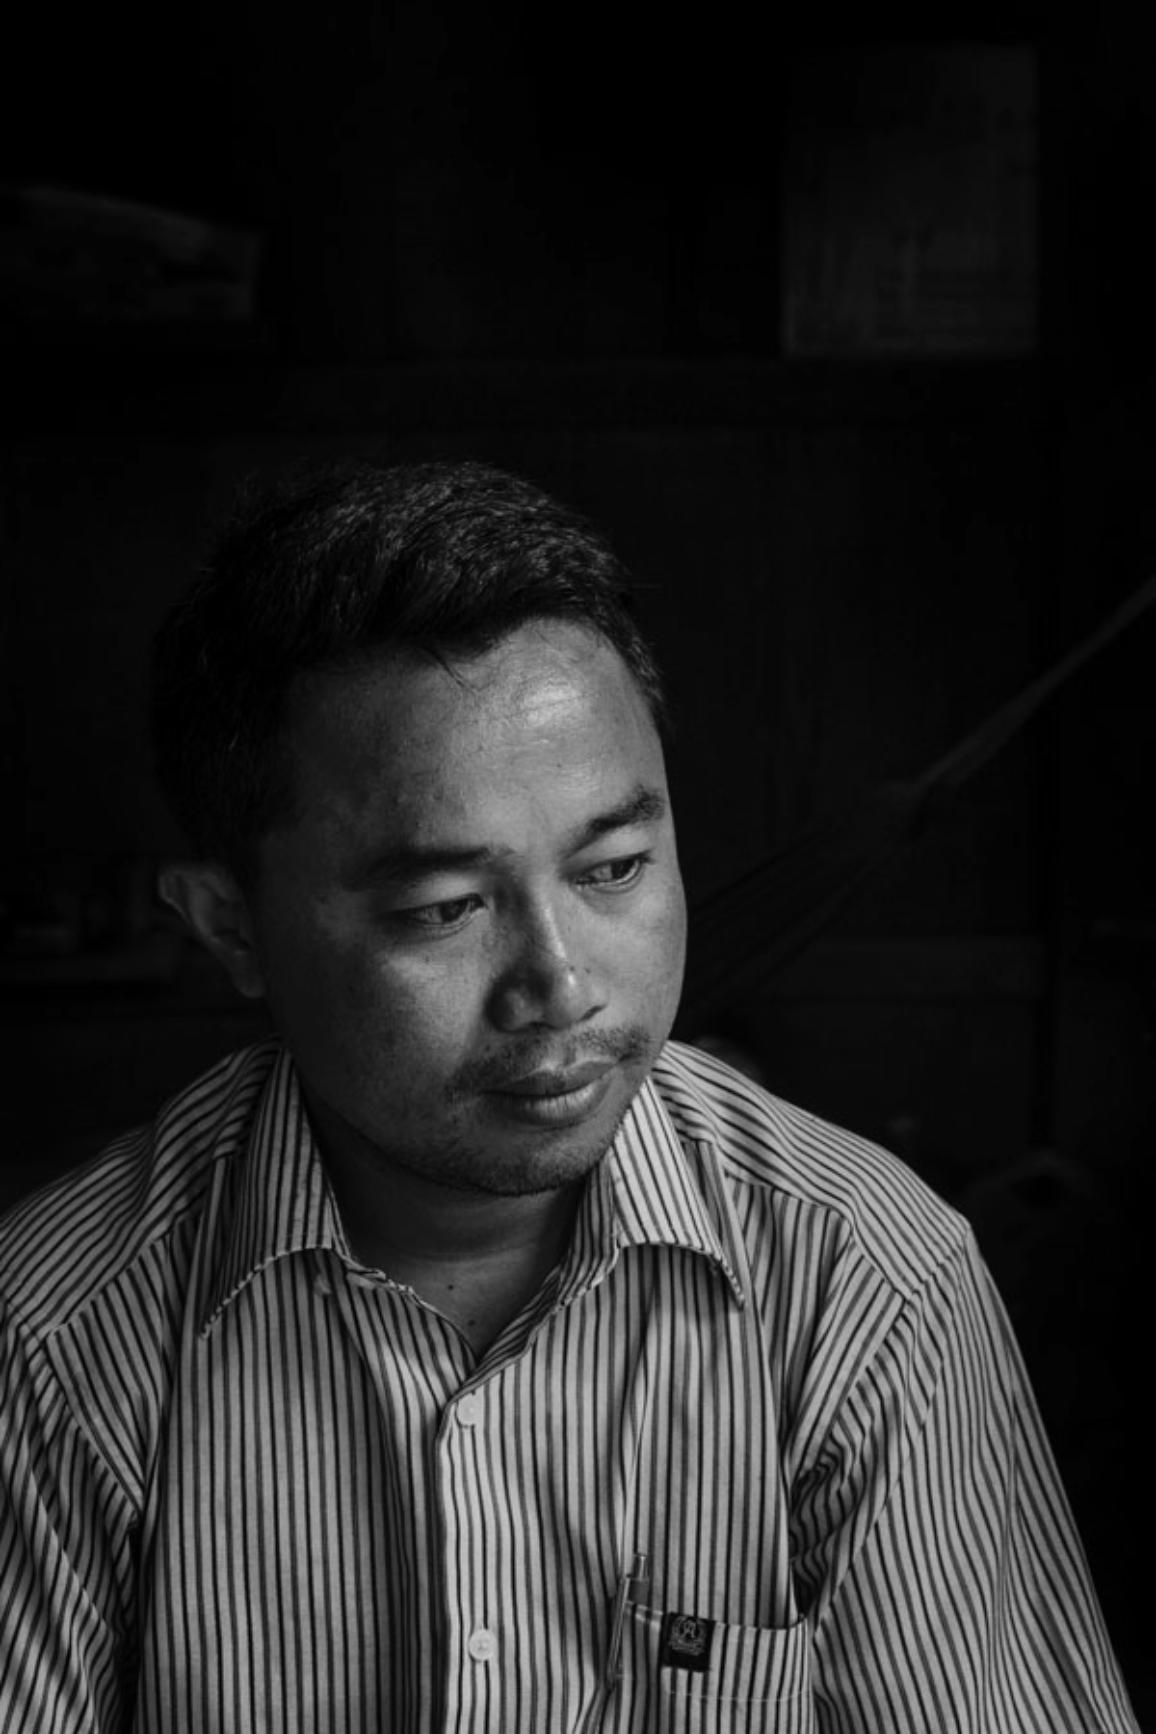 02_Cambodia_Photo 01: Samrith Vaing is a human rights activist from Cambodia and Sakharov Fellow. He is 35 years old and belongs to Bunong ethnic group, which is one of the country´s 24 communities. Samrith Vaing helps the indigenous communities facing the threat of forced eviction from their ancestral lands by the government due to aggressive agribusiness and dams' construction.©Jérôme Sessini/Magnum Photos, 2017